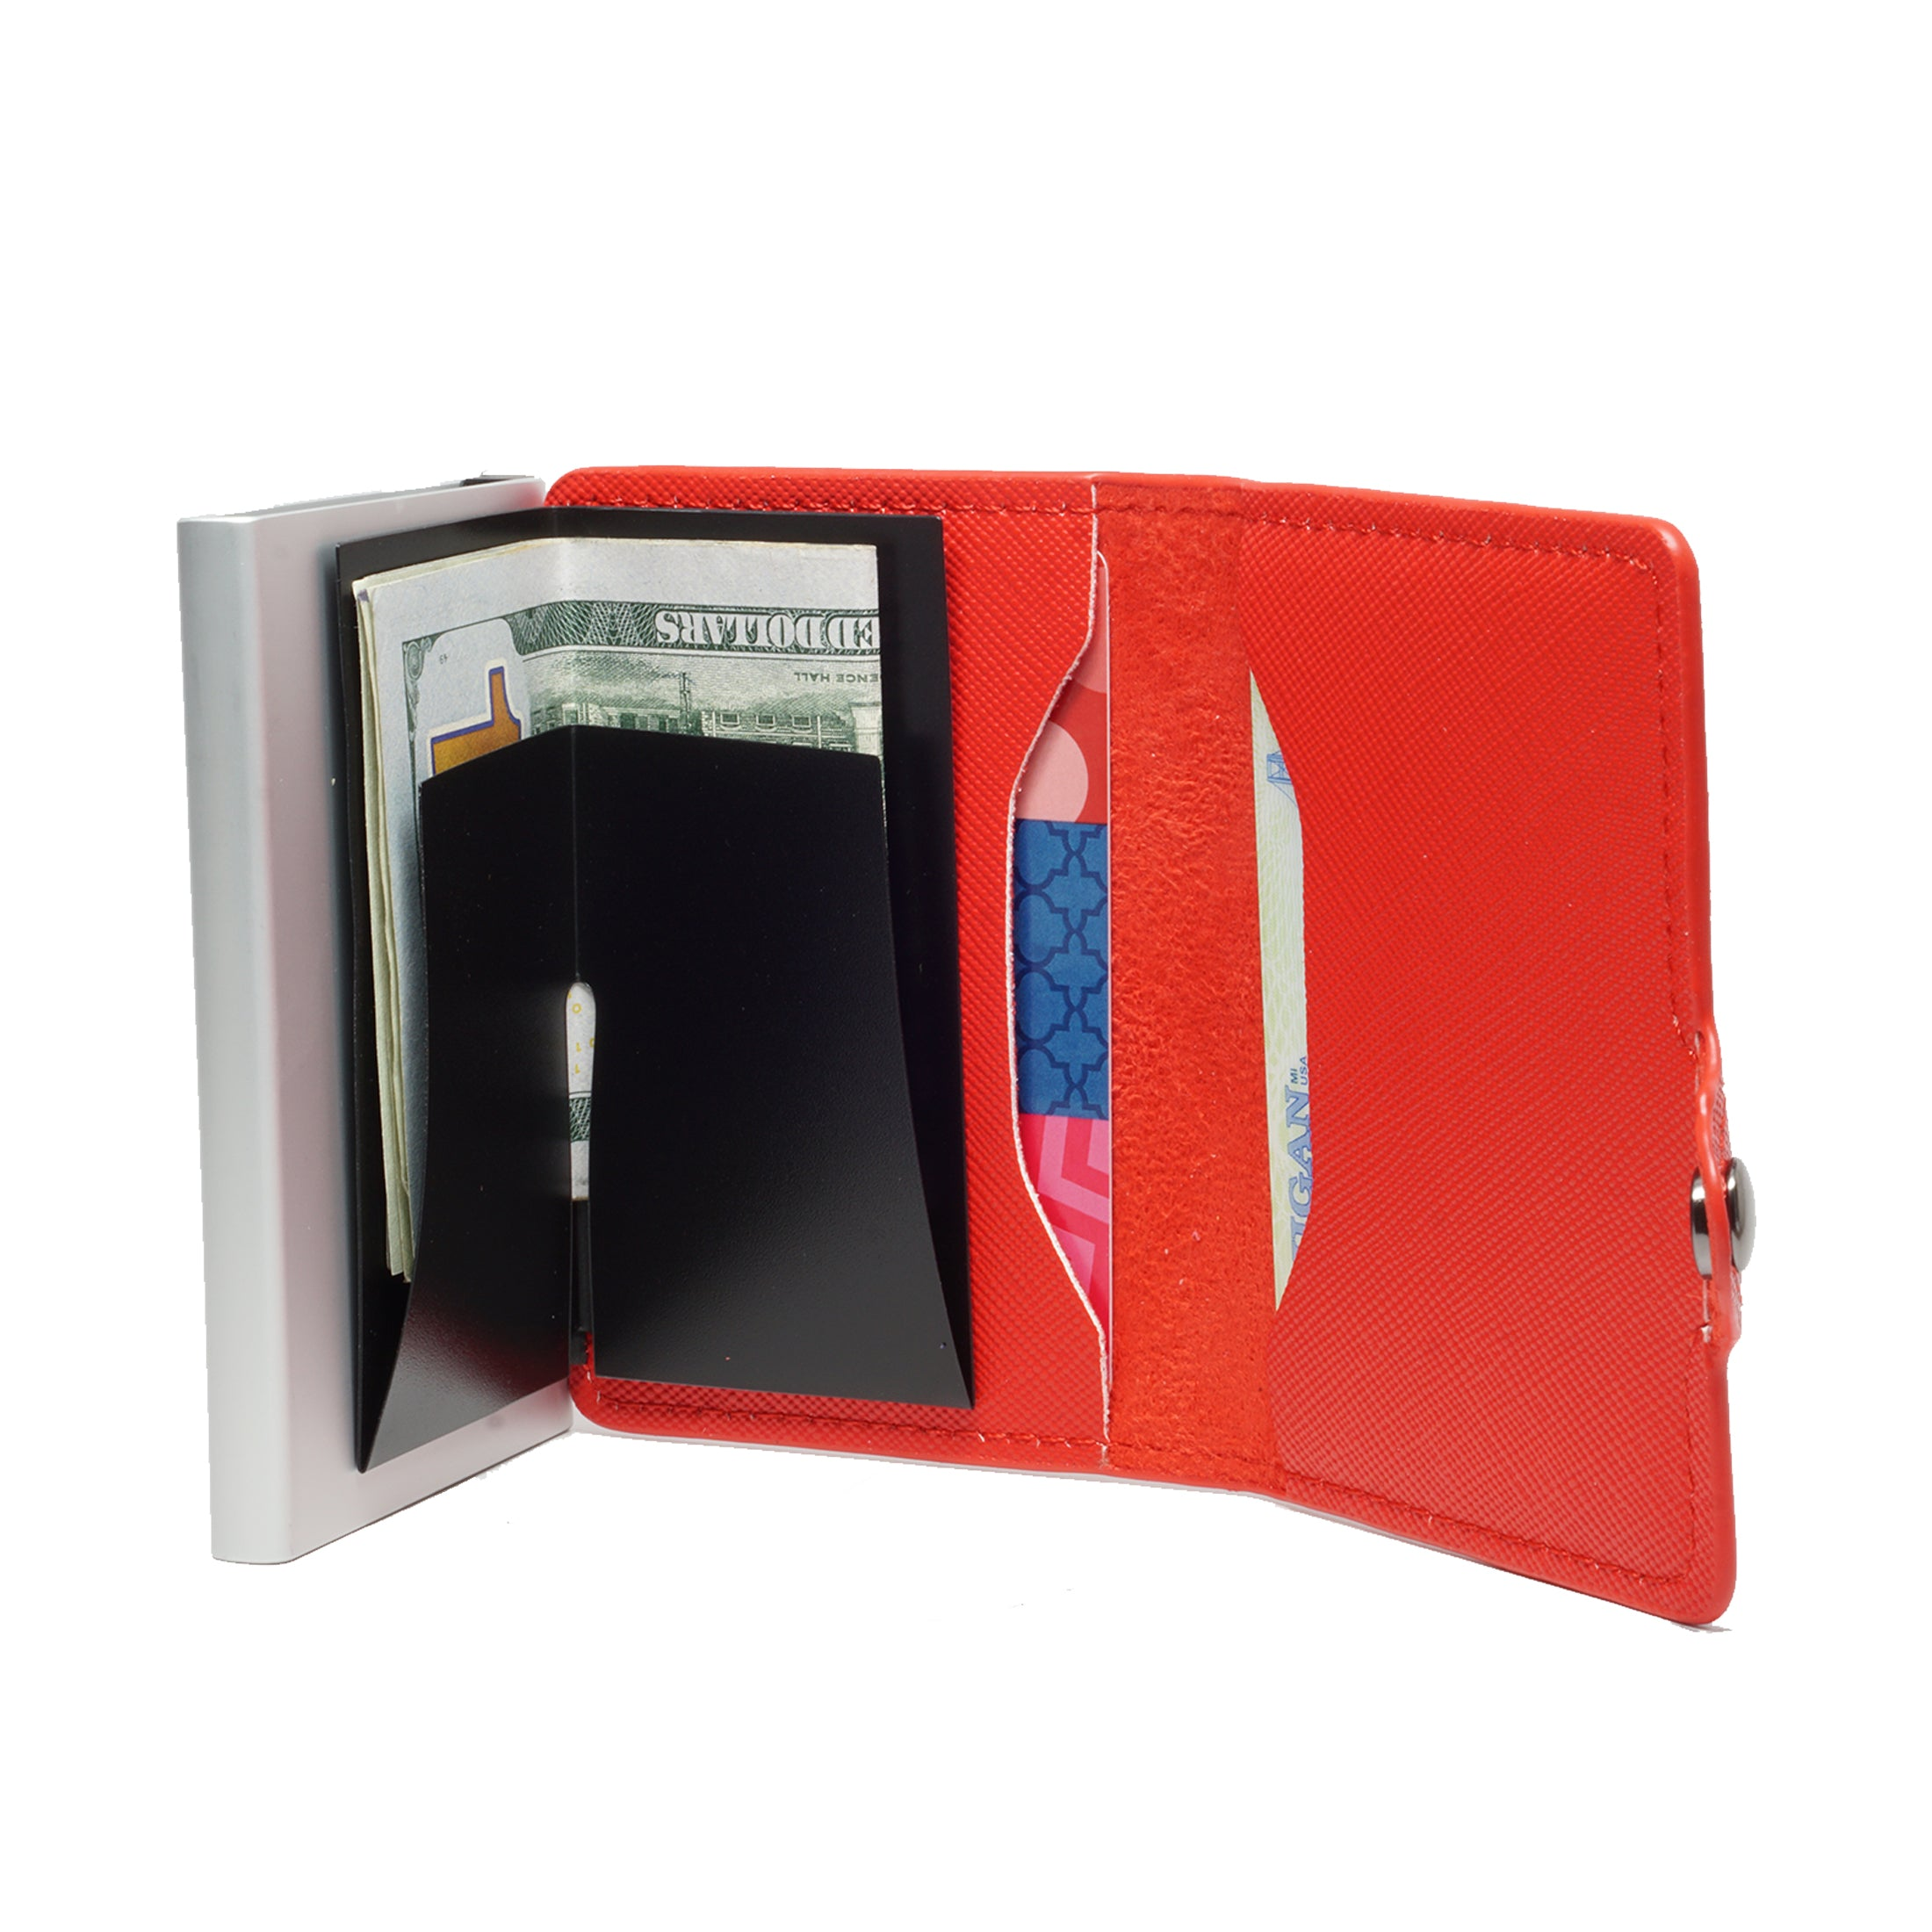 Card Blocr Credit Card Wallet Saffiano Red PU Leather and Silver Metal Minimalist Wallet